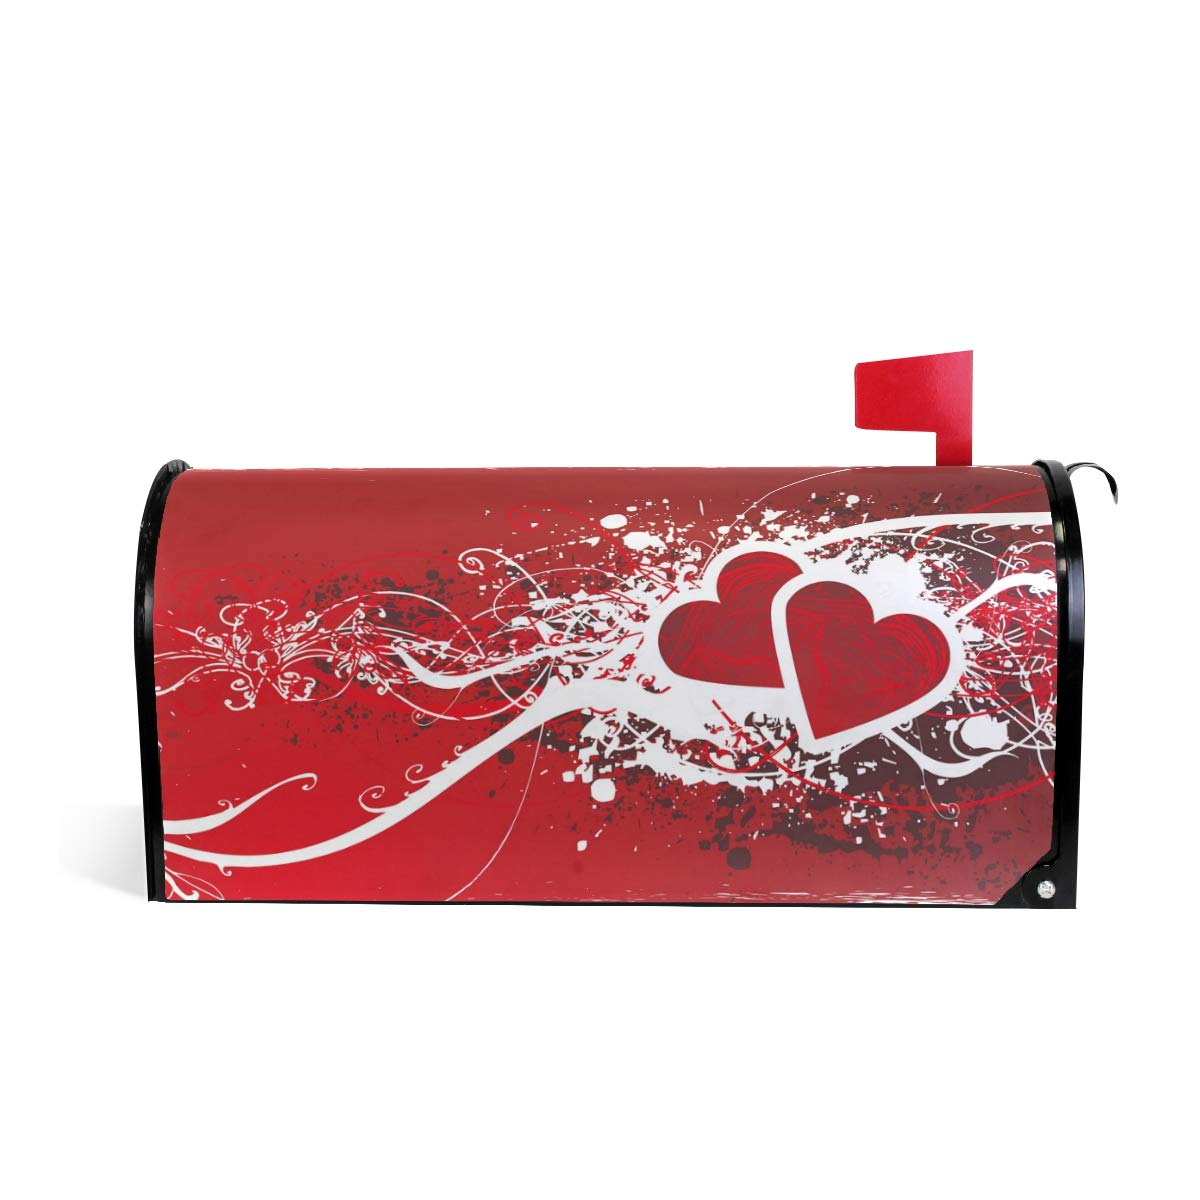 WOOR Red Heart Symbole of Love Pink Happy Valentines Day Bling Light Hearts Magnetic Mailbox Cover MailWraps Garden Yard Home Decor for Outside Oversized-25.5 x20.8